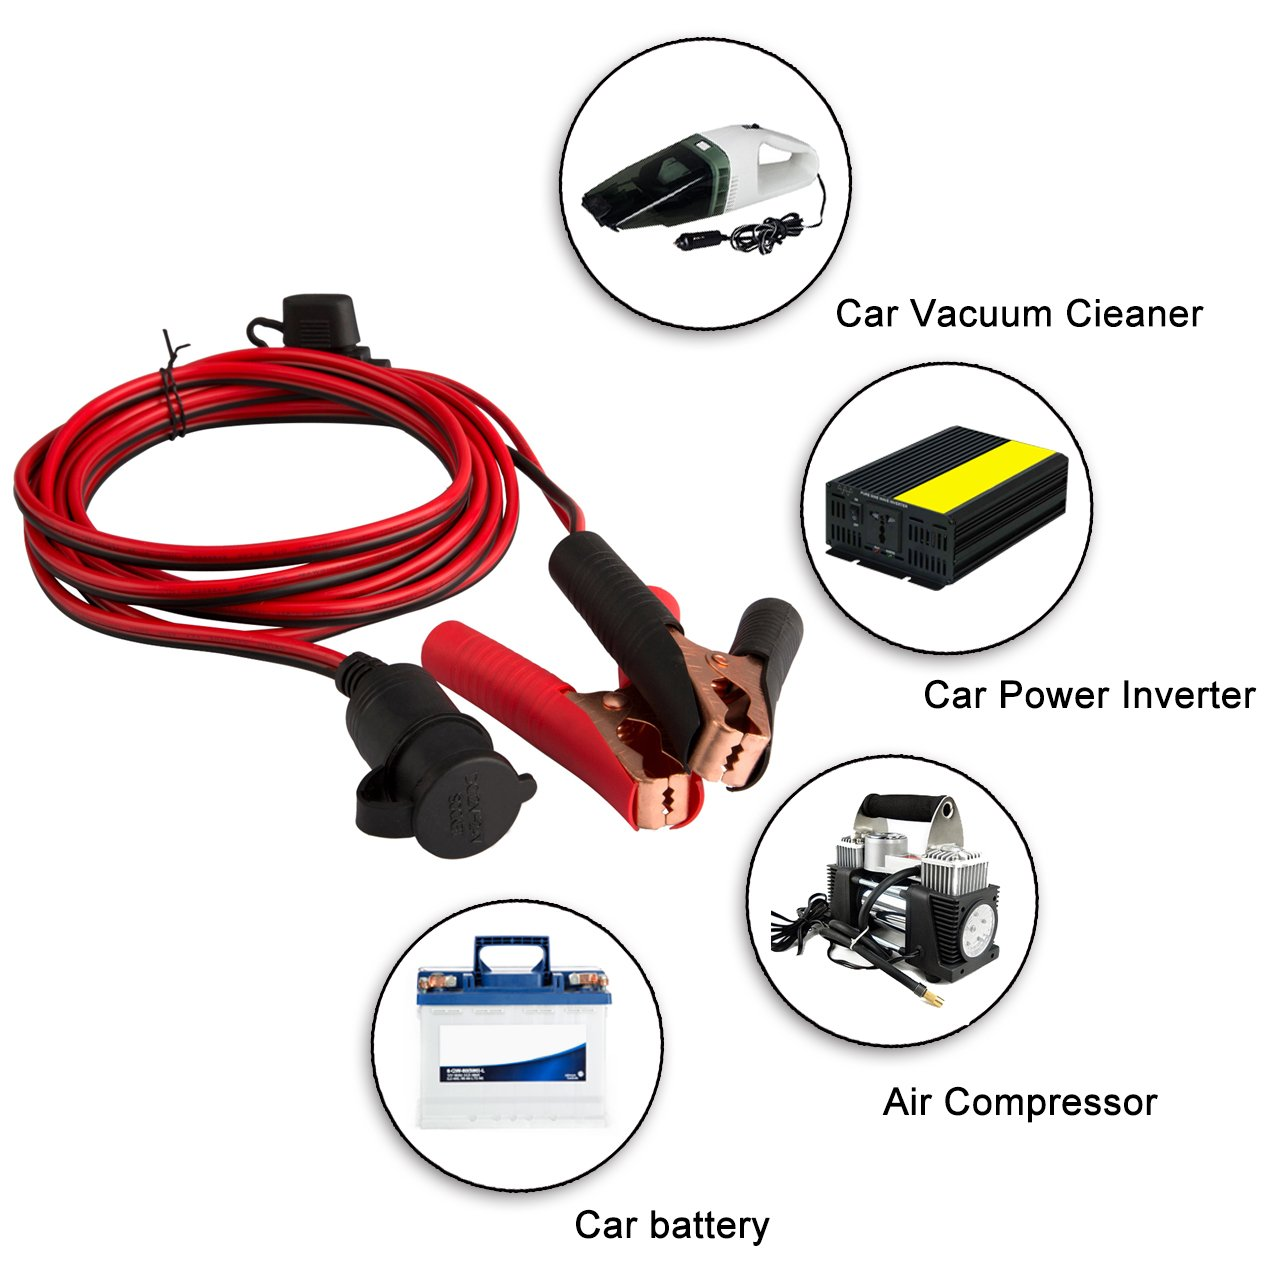 Magiin Car Battery Clip On Cigarette Lighter Socket Adaptor Cable Blade Fuse Tap Holder Add A Circuit Line Truck Rv Van Boat Ebay 12v 24v 3m 10ft Extension Cord With For Portable Air Compressor